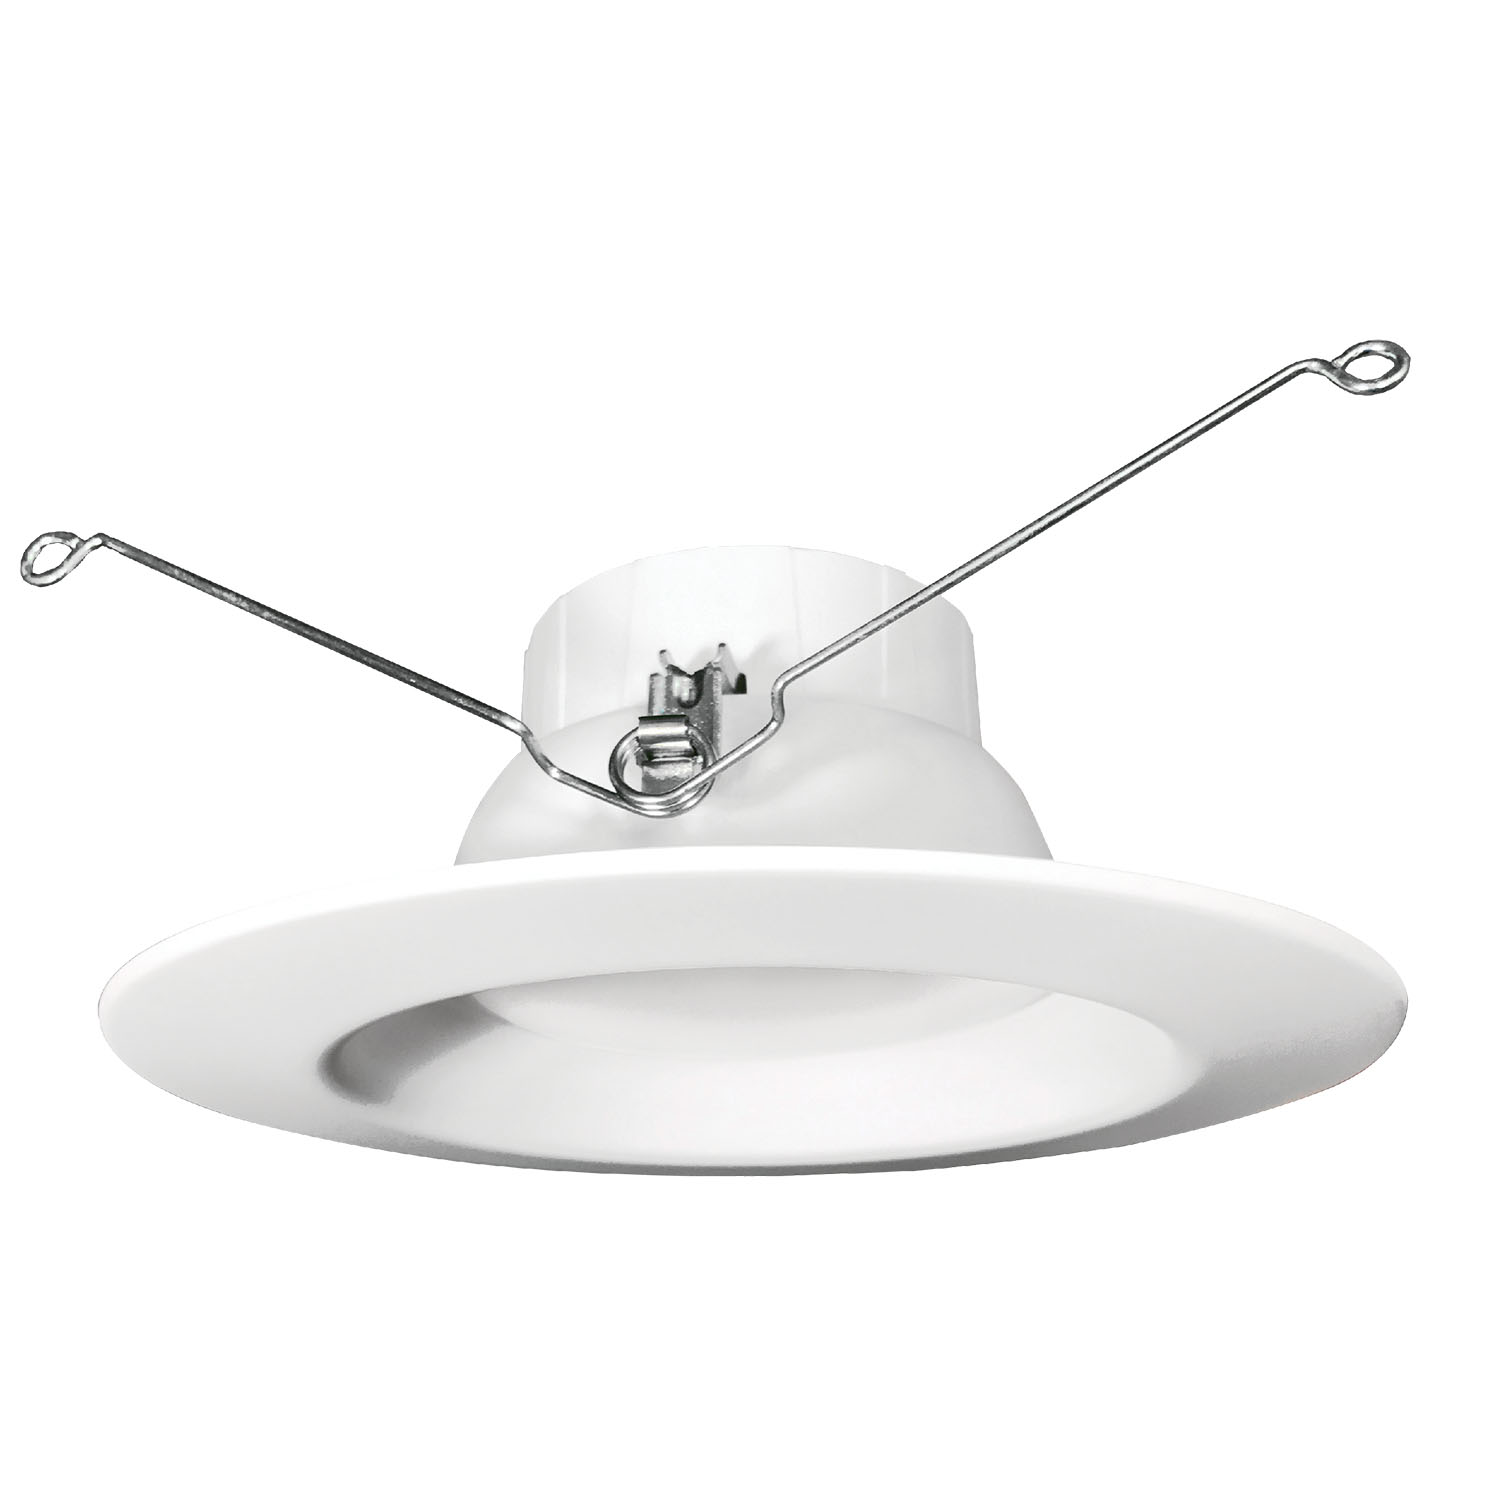 "DL6FR10/927/ECO/LED2 99637 6"" Retrofit Downlight, 10W, 2700K, Dimmable ProLED ECO Series II"